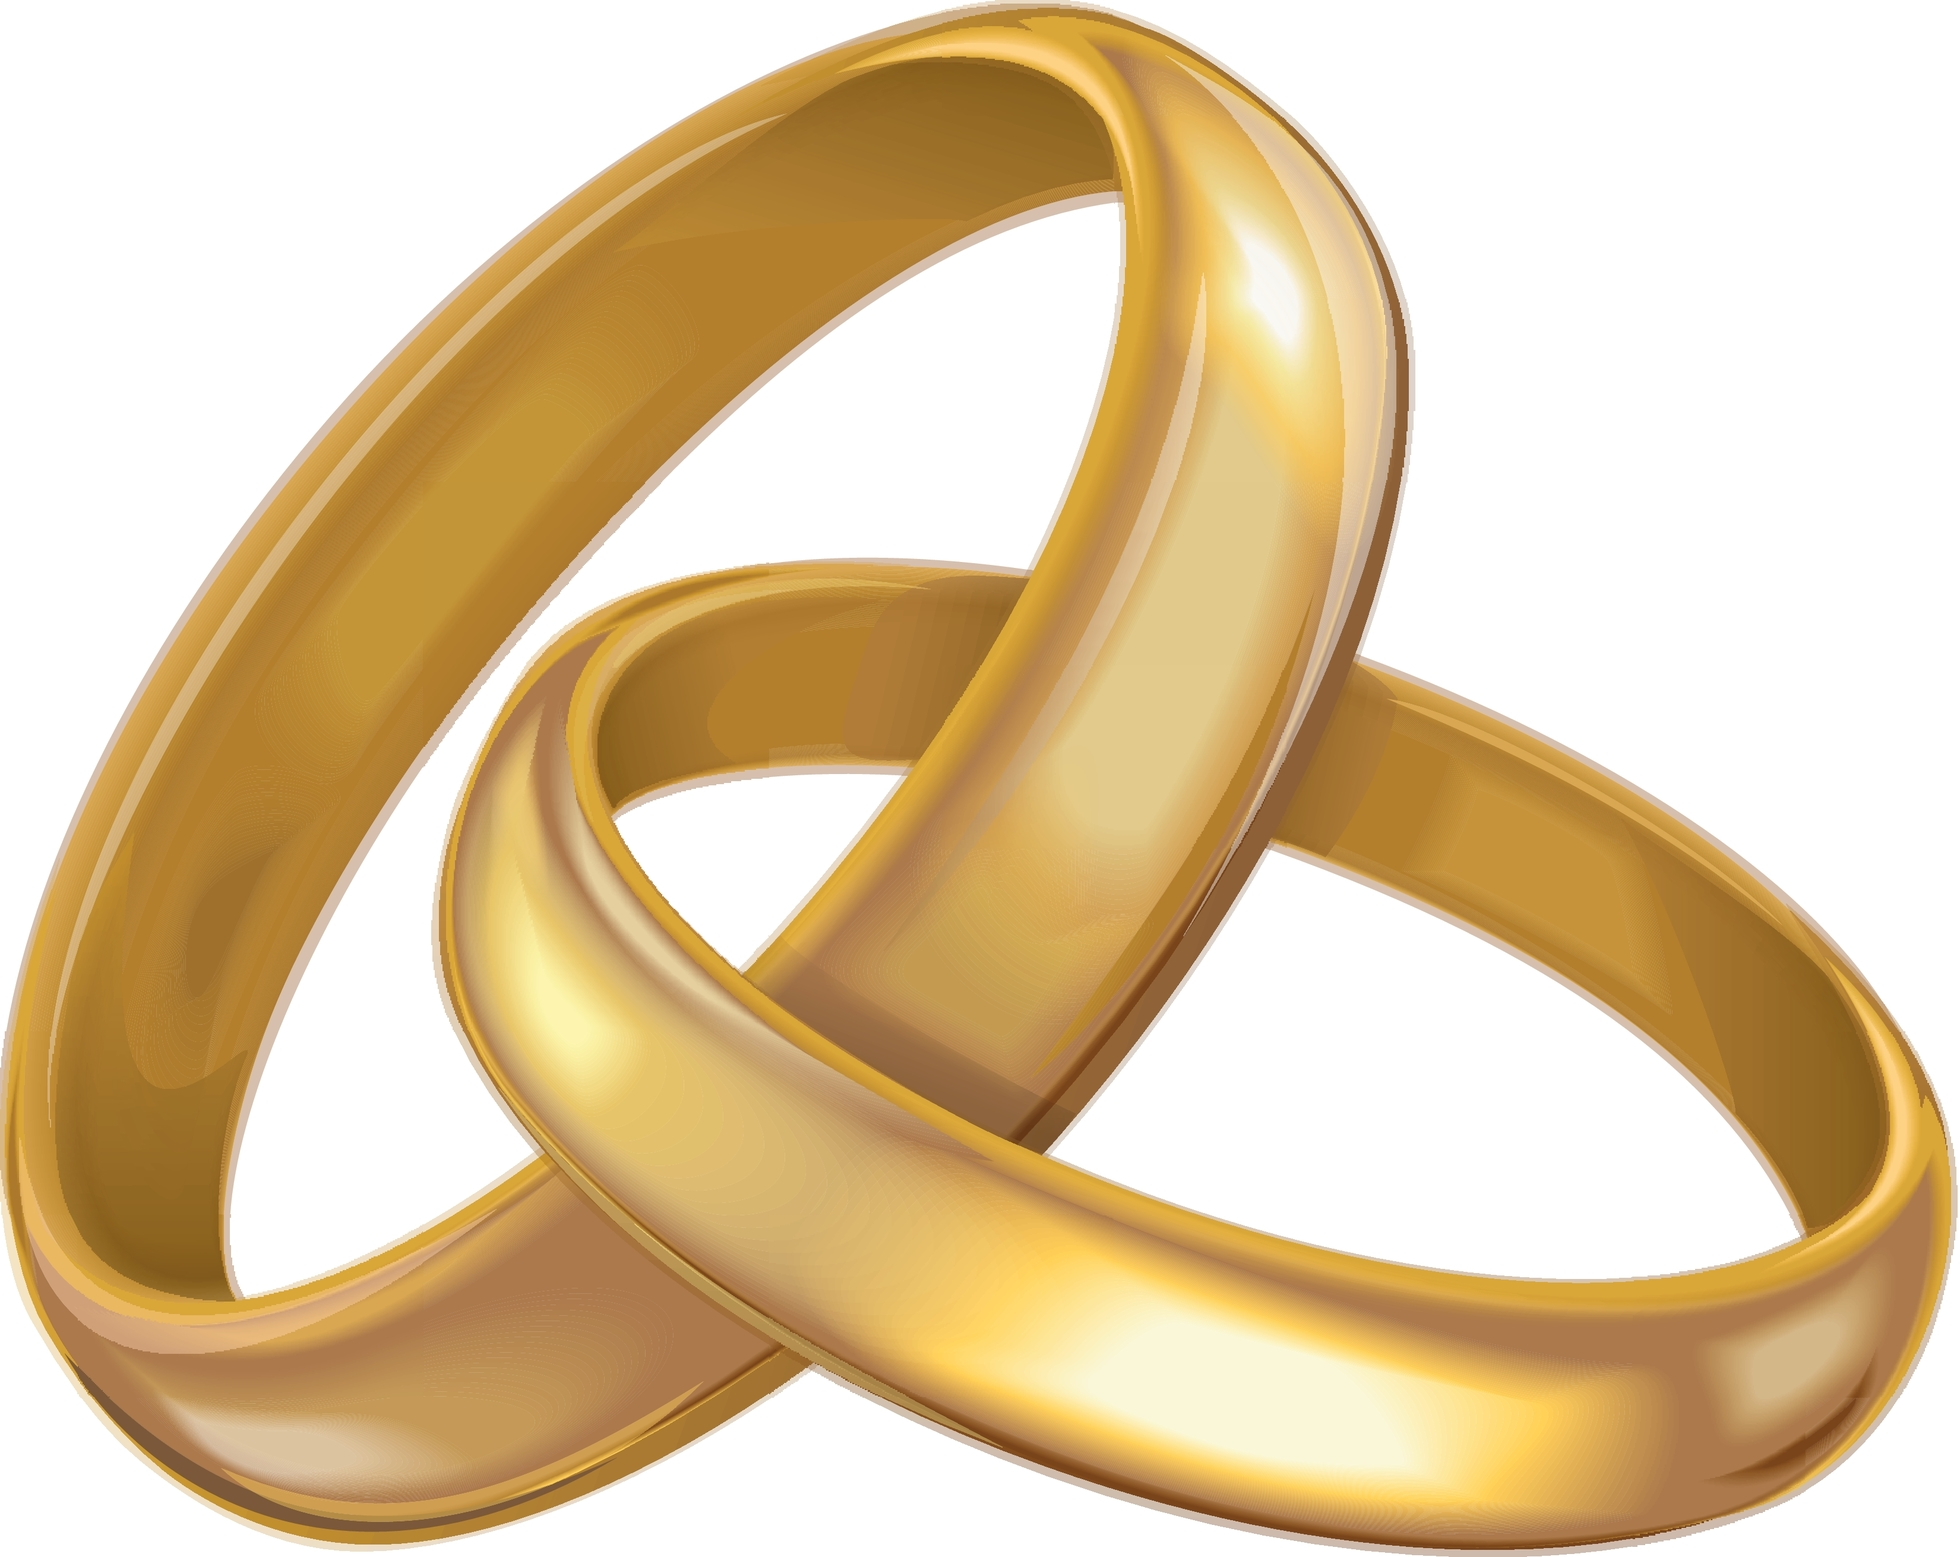 Wedding Ring Clipart & Wedding Ring Clip Art Images.